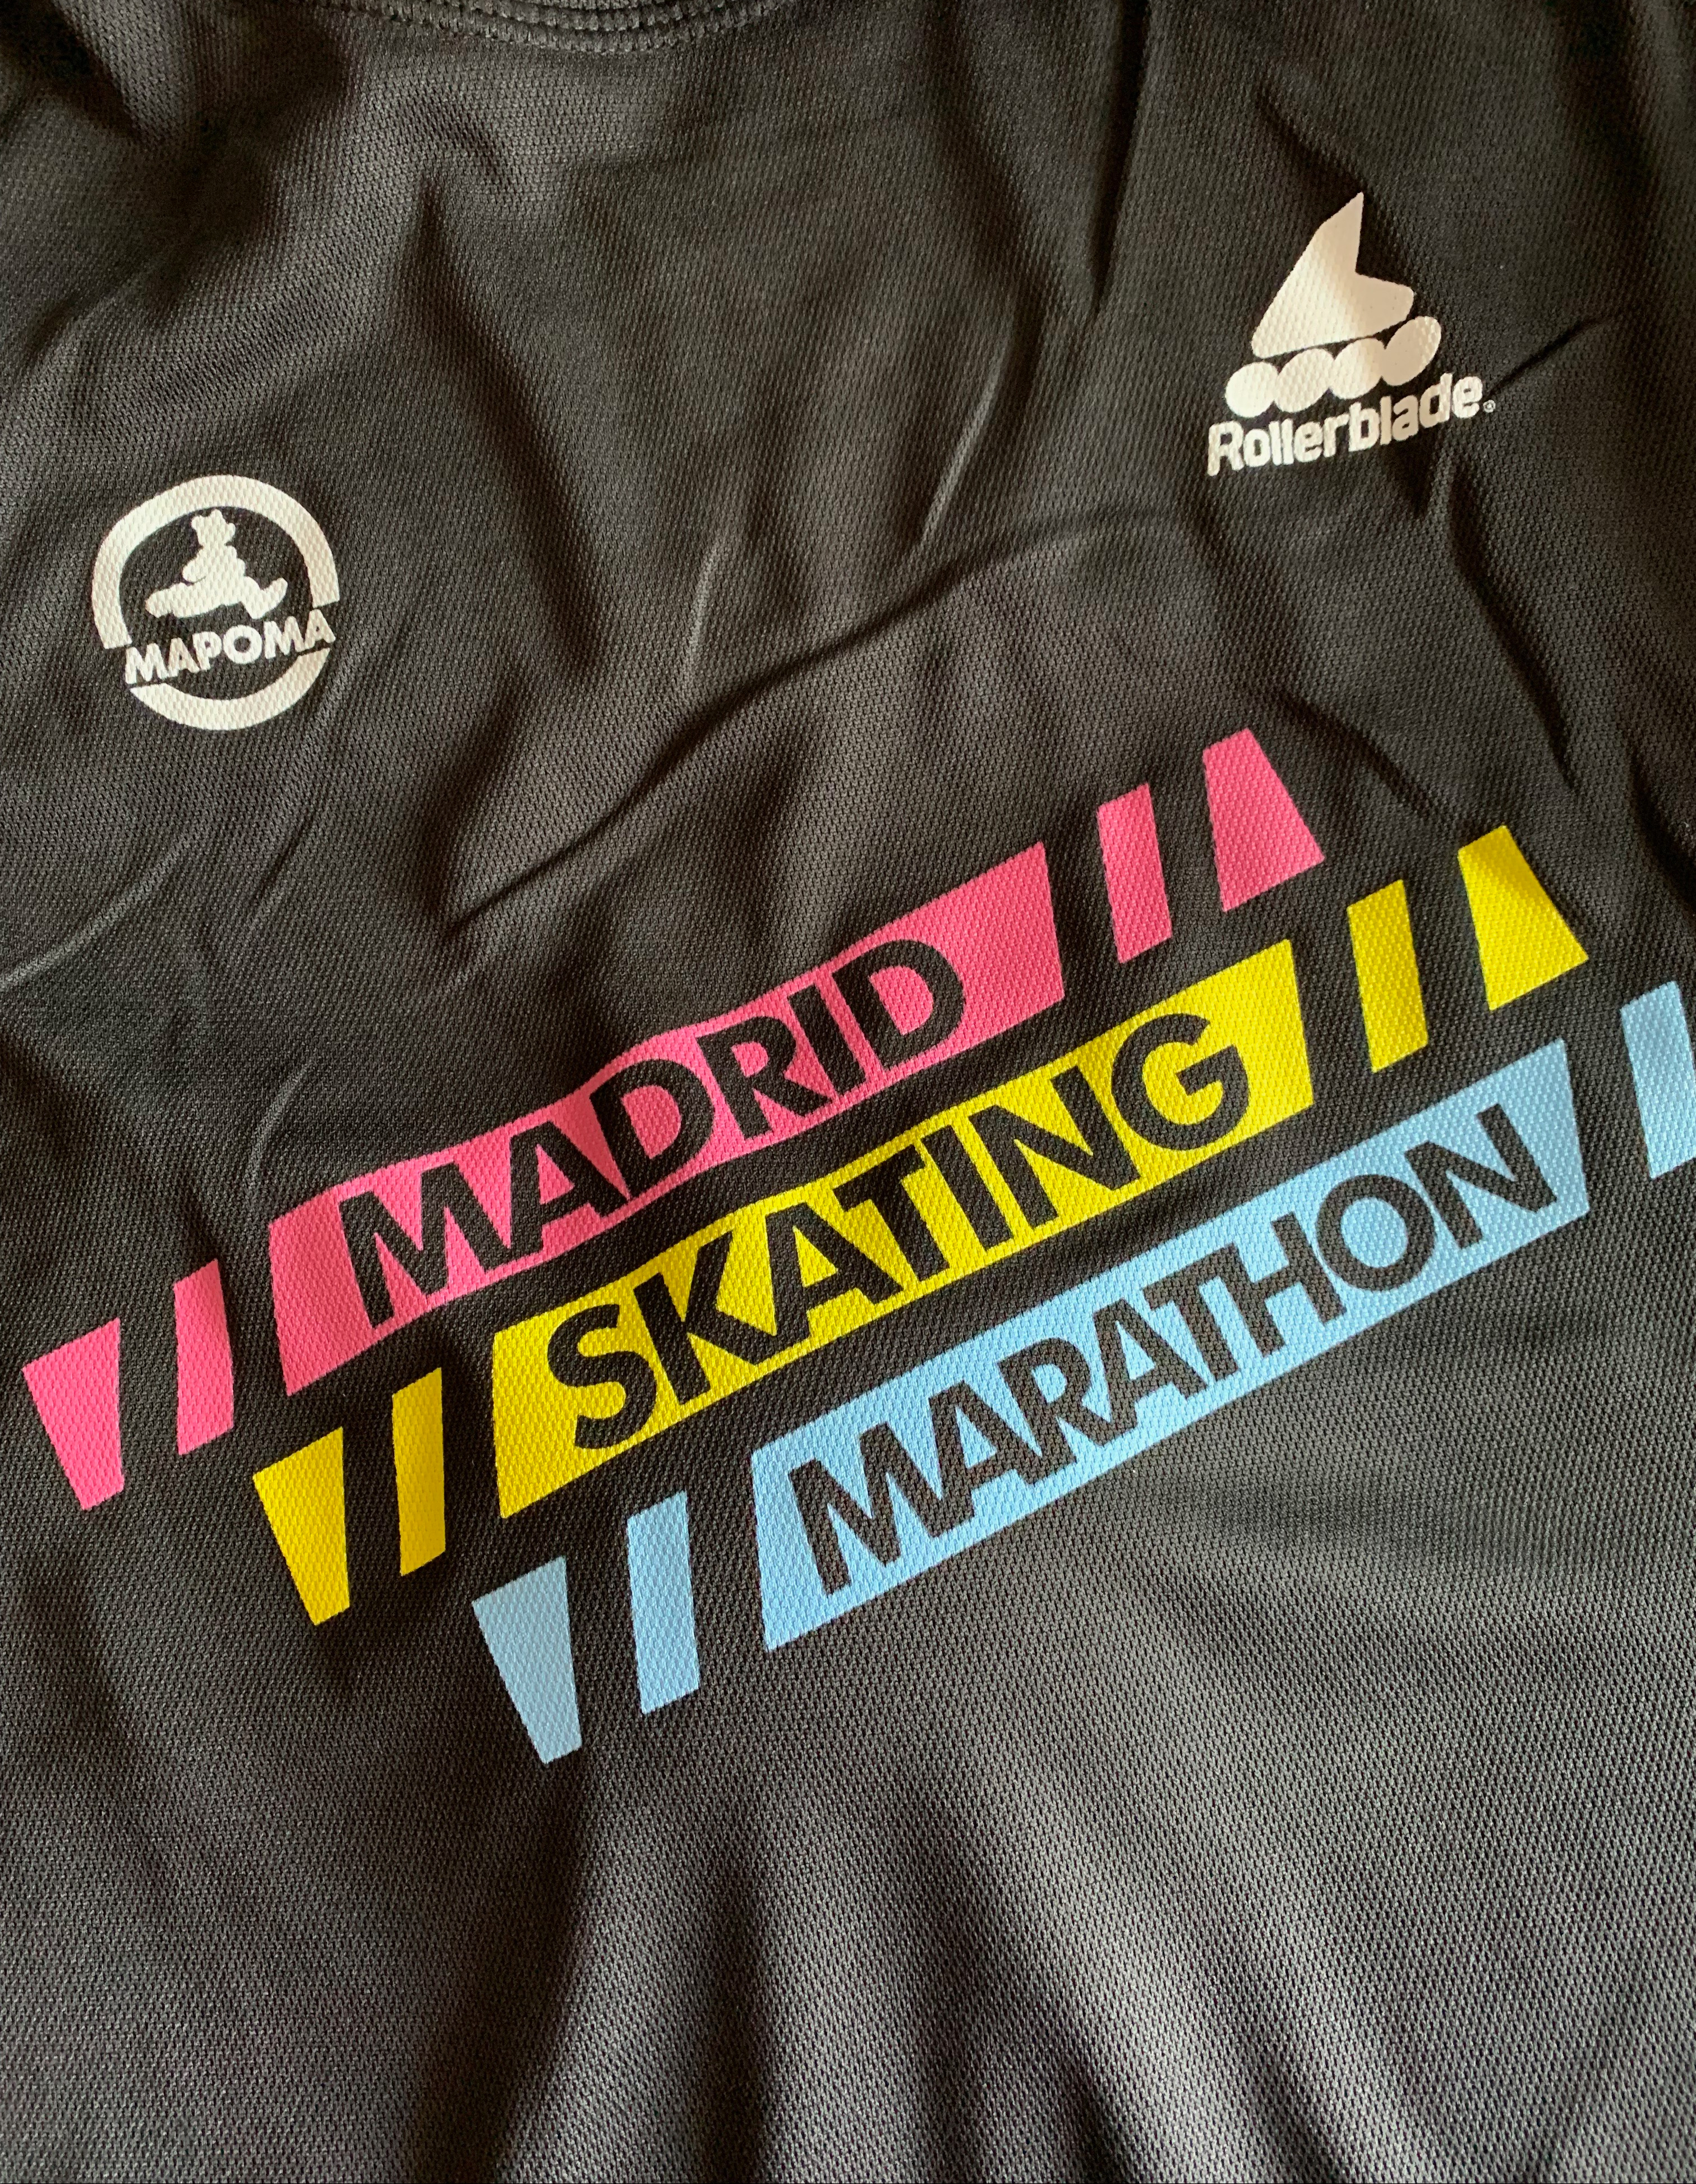 Madrid Skating Marathon